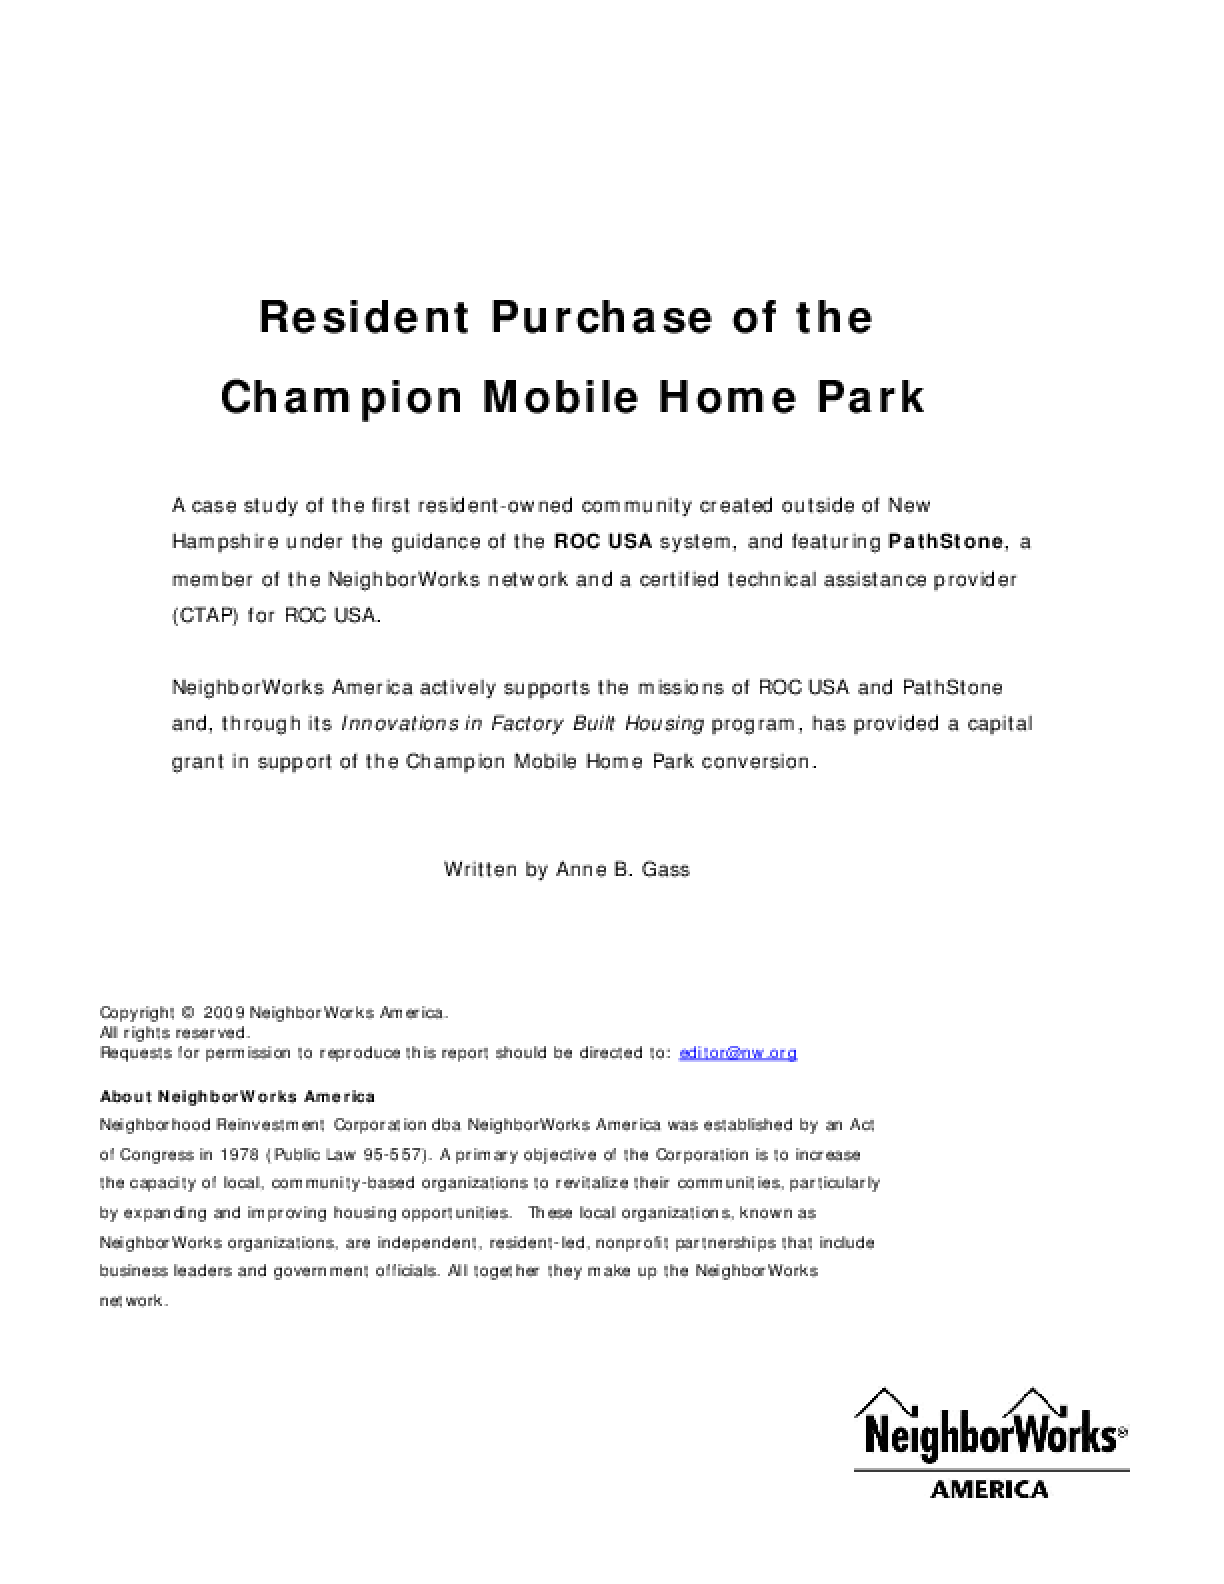 Resident Purchase of the Champion Mobile Home Park